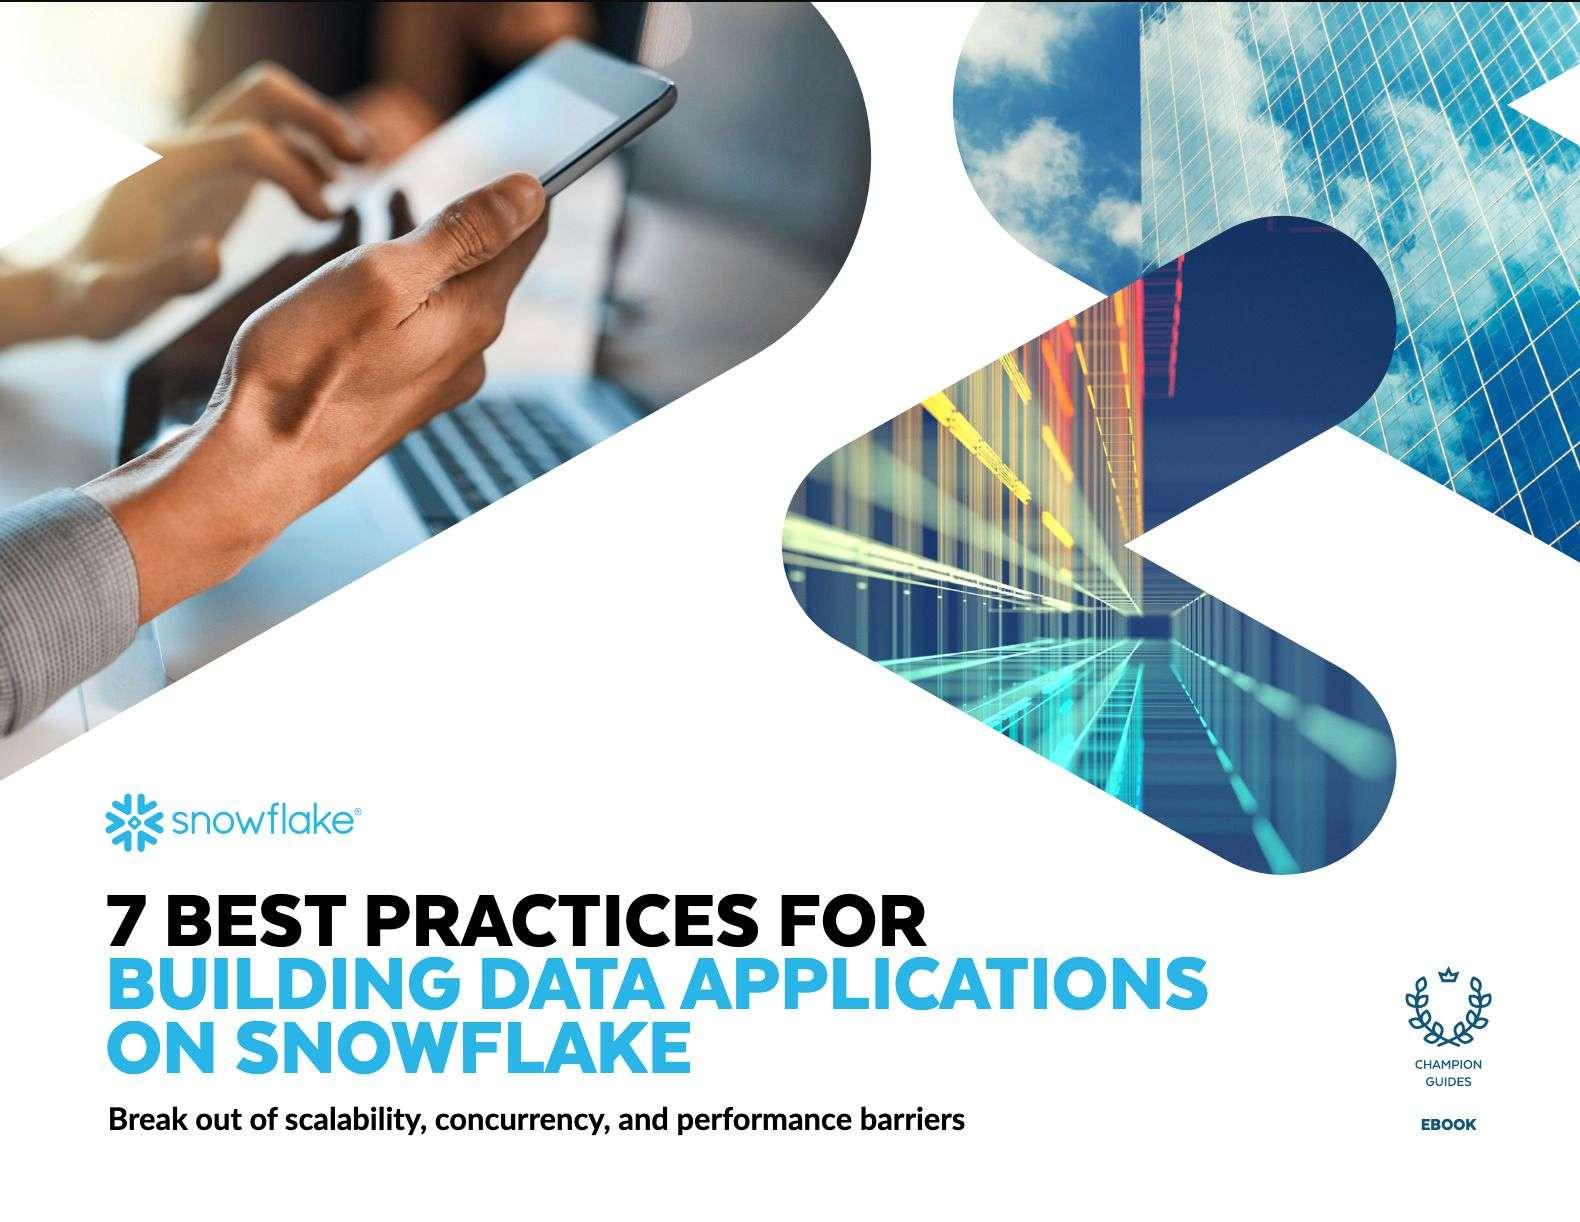 Screenshot 2020 10 22 7 best practices for building data applications on snowflake pdf - 7 Best Practices For Building Data Applications on Snowflake